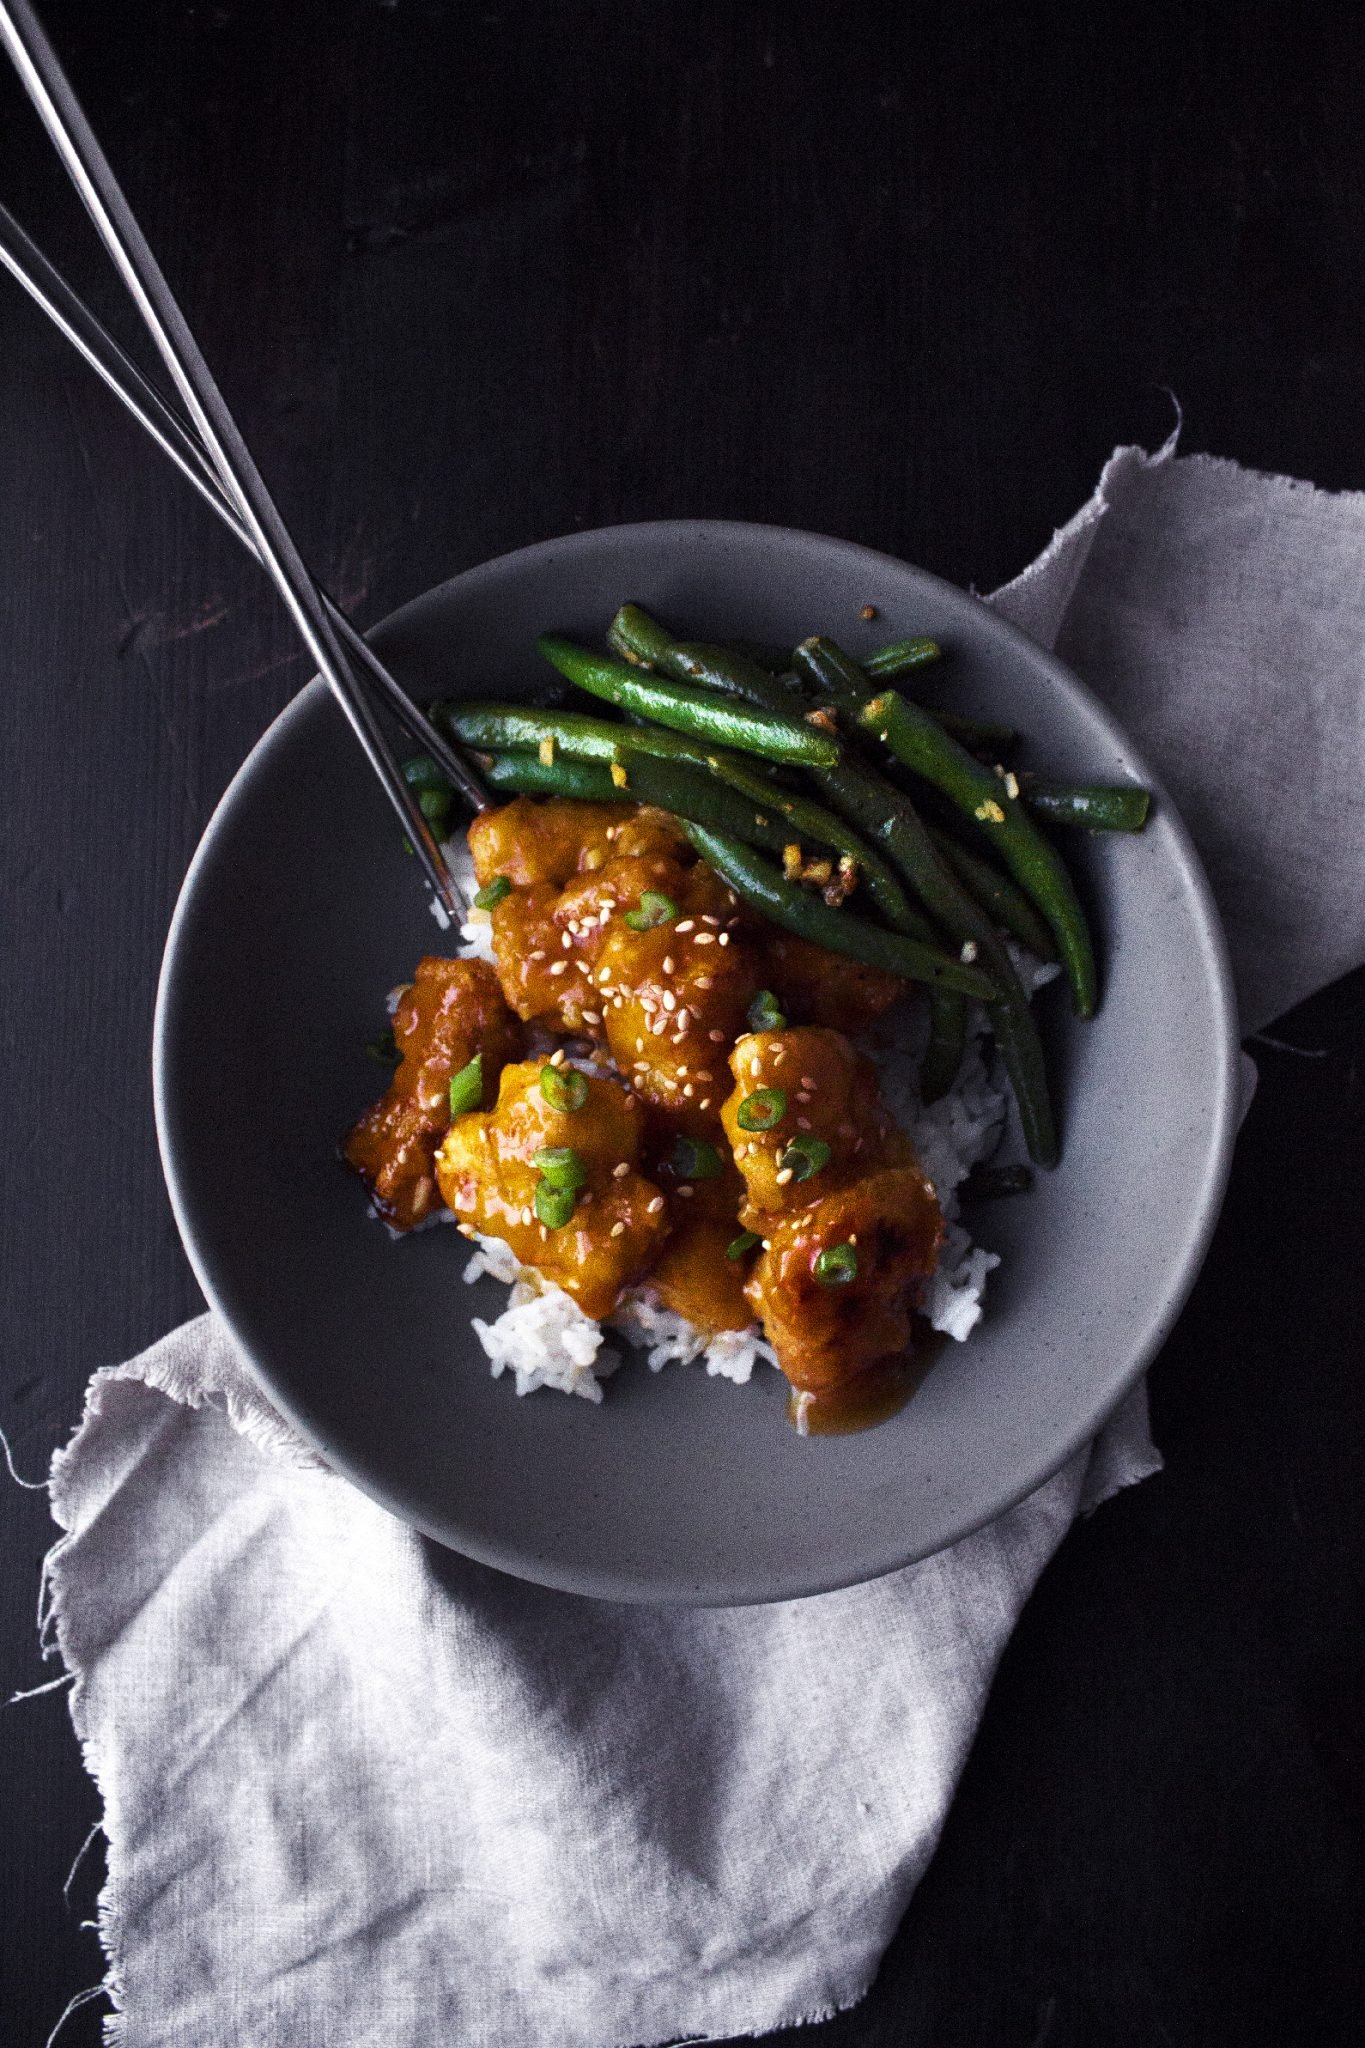 Orange Chicken With Ginger Garlic Green Beans | Free of gluten, dairy, and refined sugar. Made with wholesome ingredients.